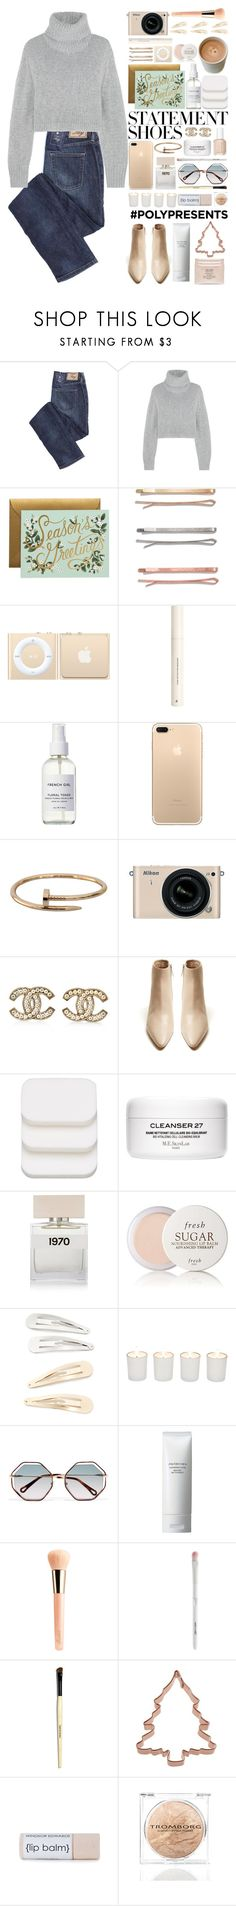 """""""#PolyPresents: Statement Shoes"""" by ludocottoncandyprincess02 ❤ liked on Polyvore featuring Dion Lee, Madewell, H&M, French Girl, Cartier, Nikon, Chanel, COVERGIRL, Bella Freud and Fresh"""